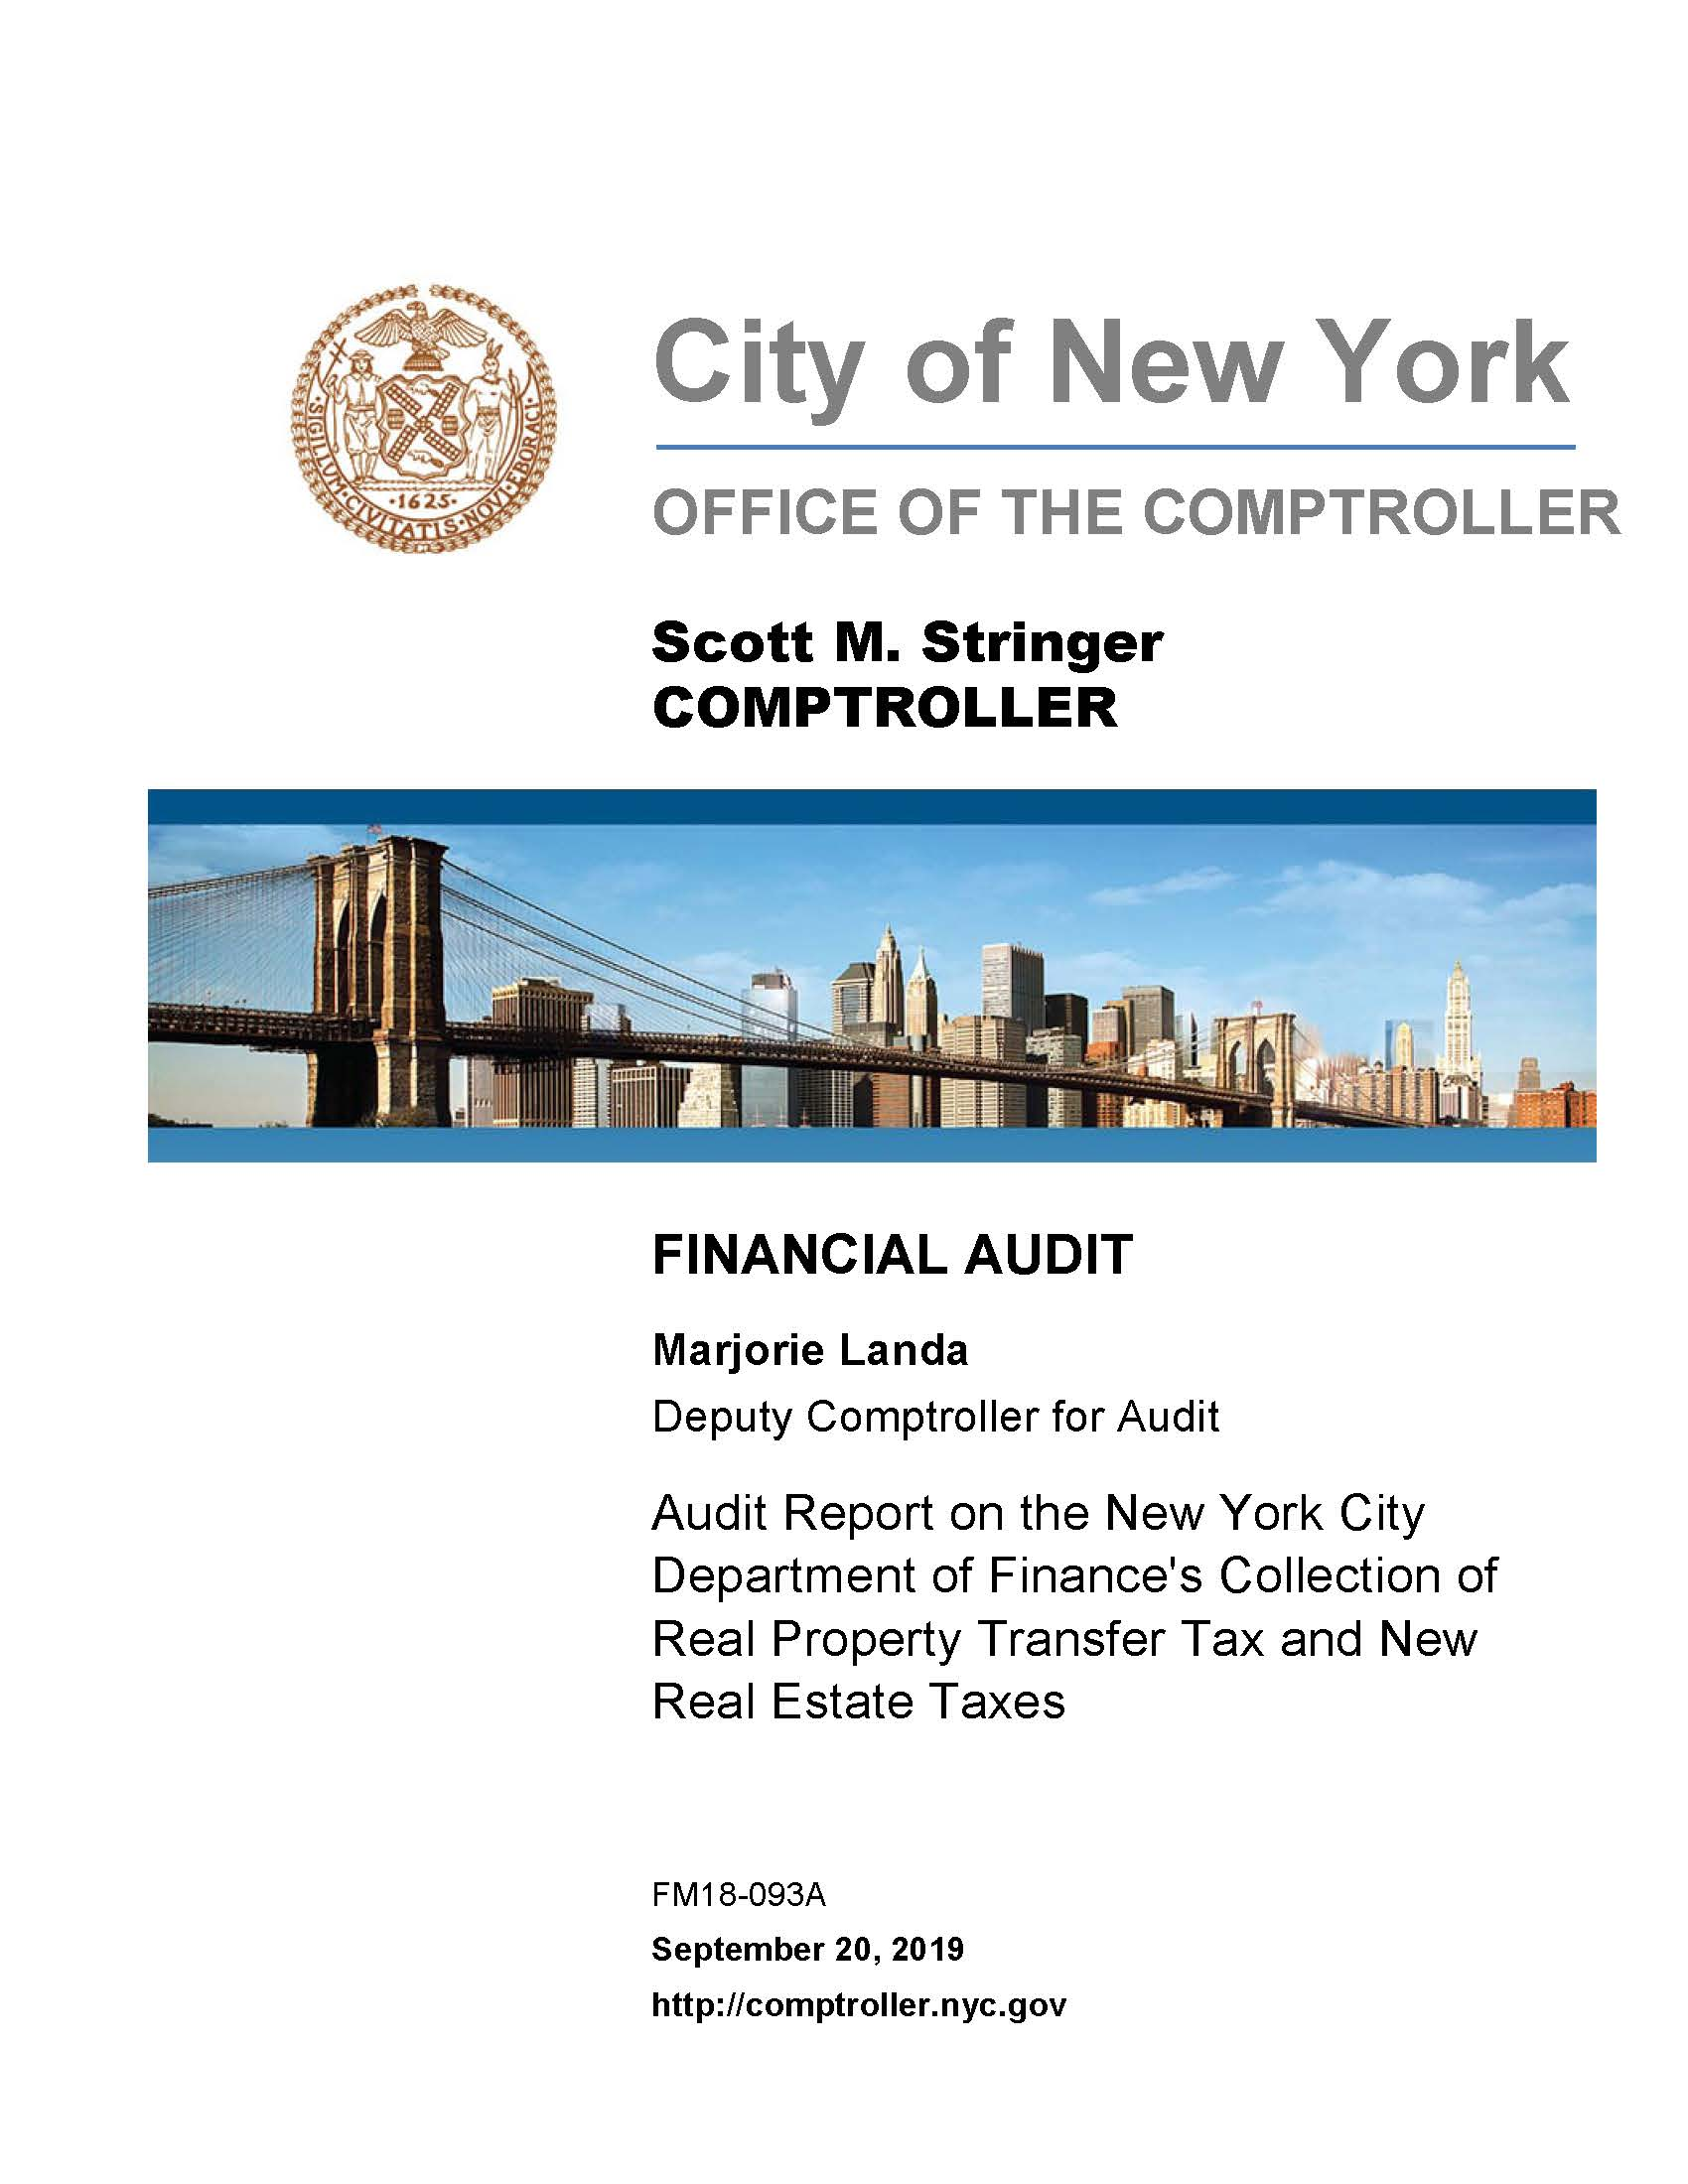 New York City Real Estate Taxes Are The Unfairest Of Them: Audit Report On The New York City Department Of Finance's